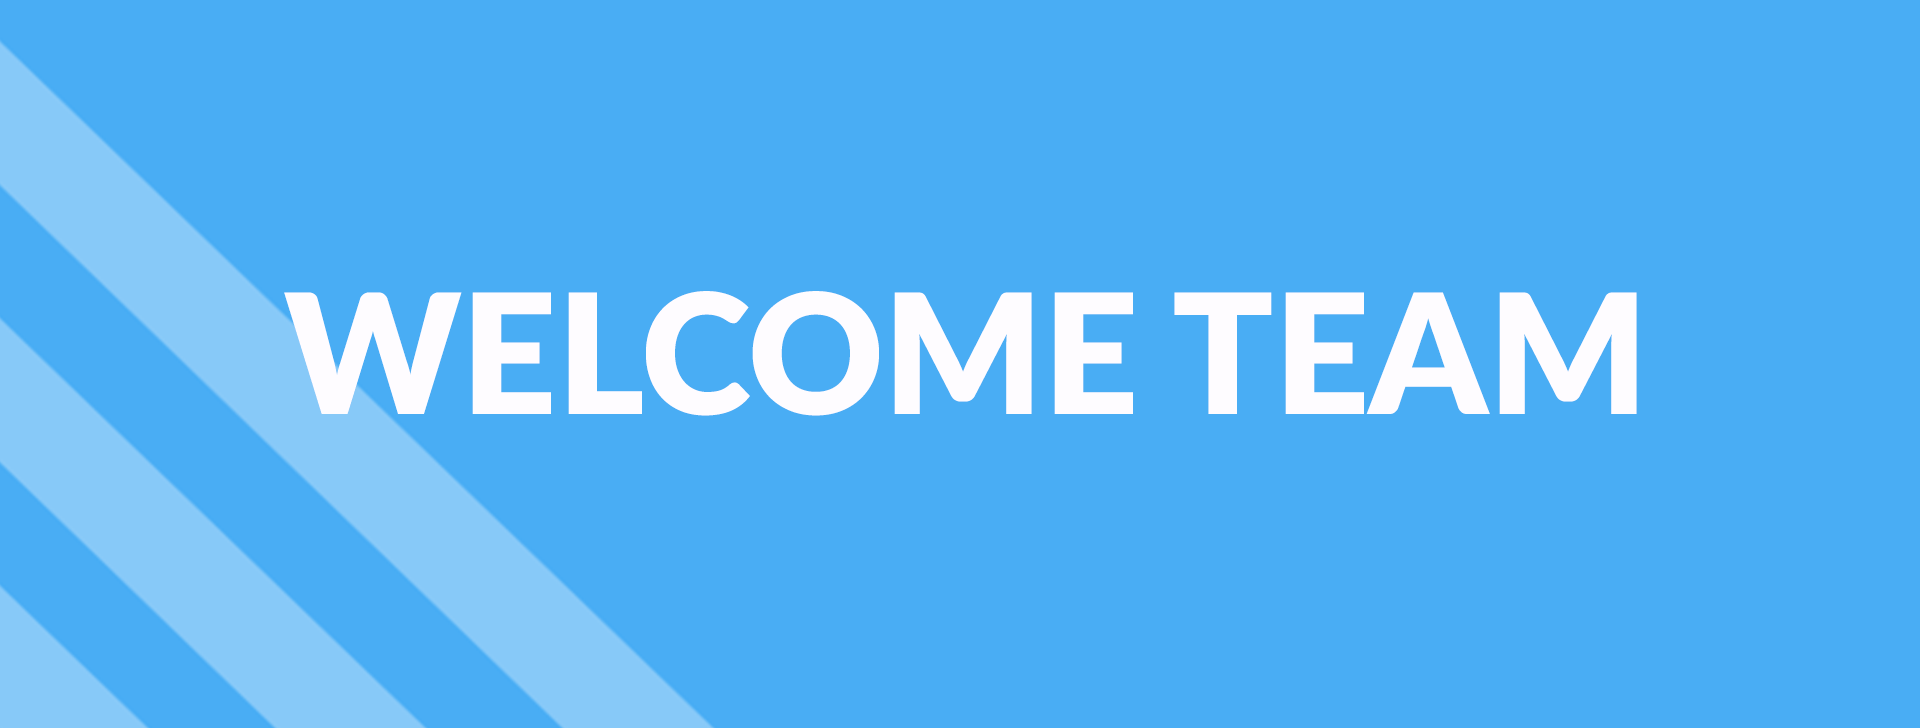 welcoming_team_banner